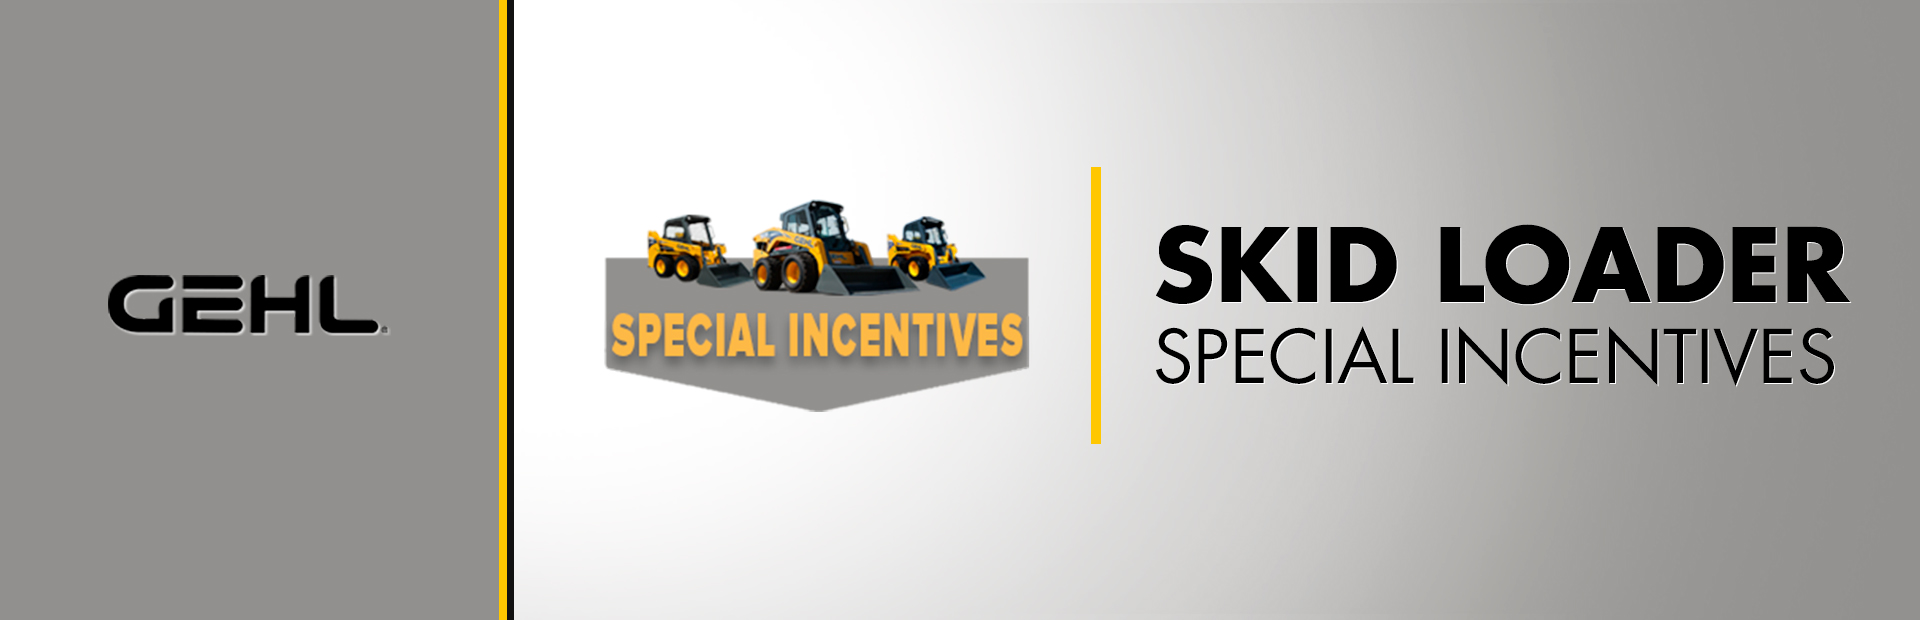 Gehl: Skid Loader - Special Incentives